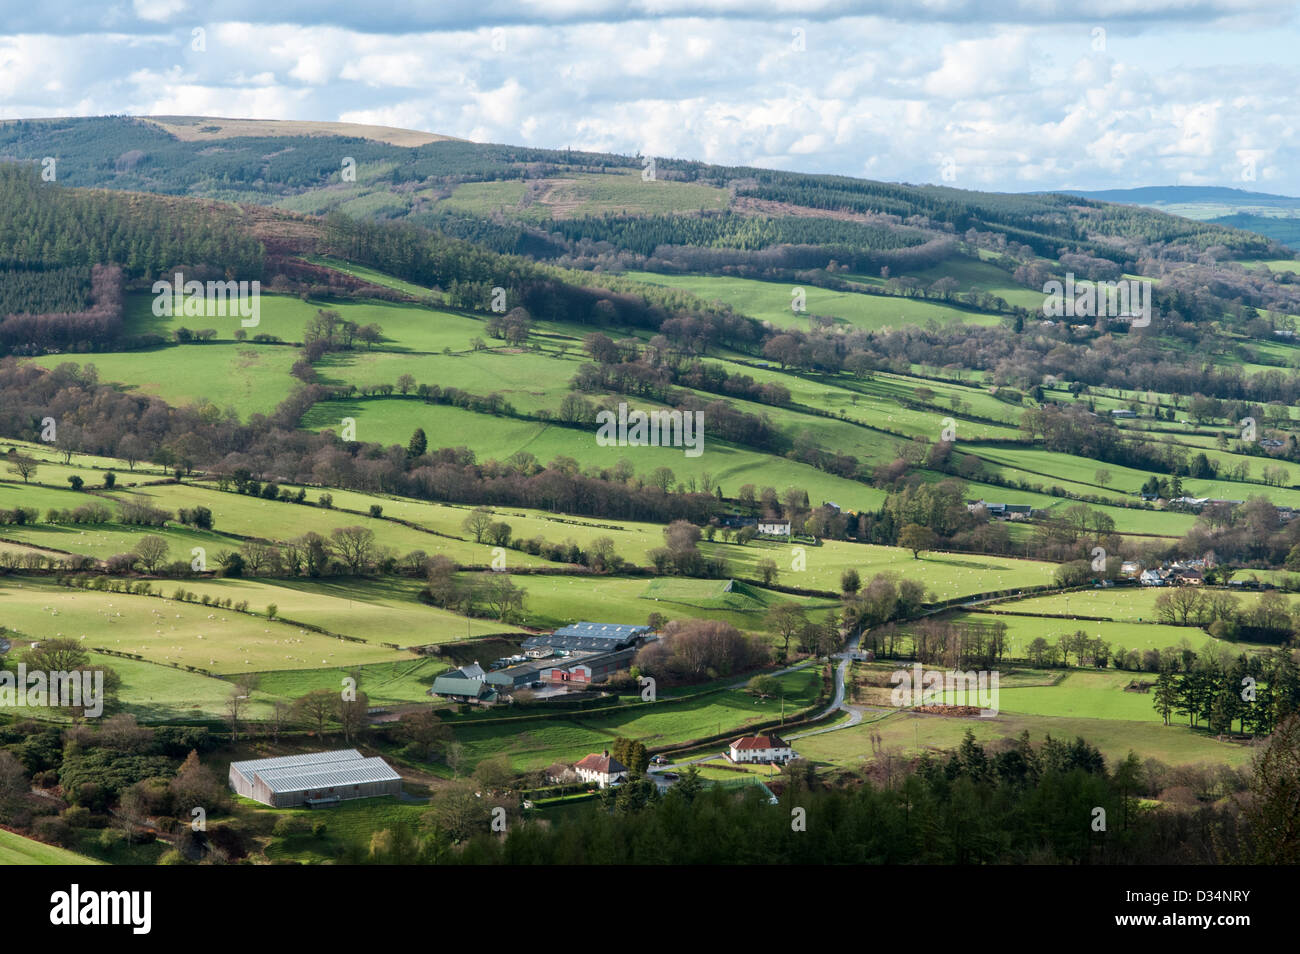 View across the Talybont Valley in the Brecon Beacons National Park, south Wales. - Stock Image